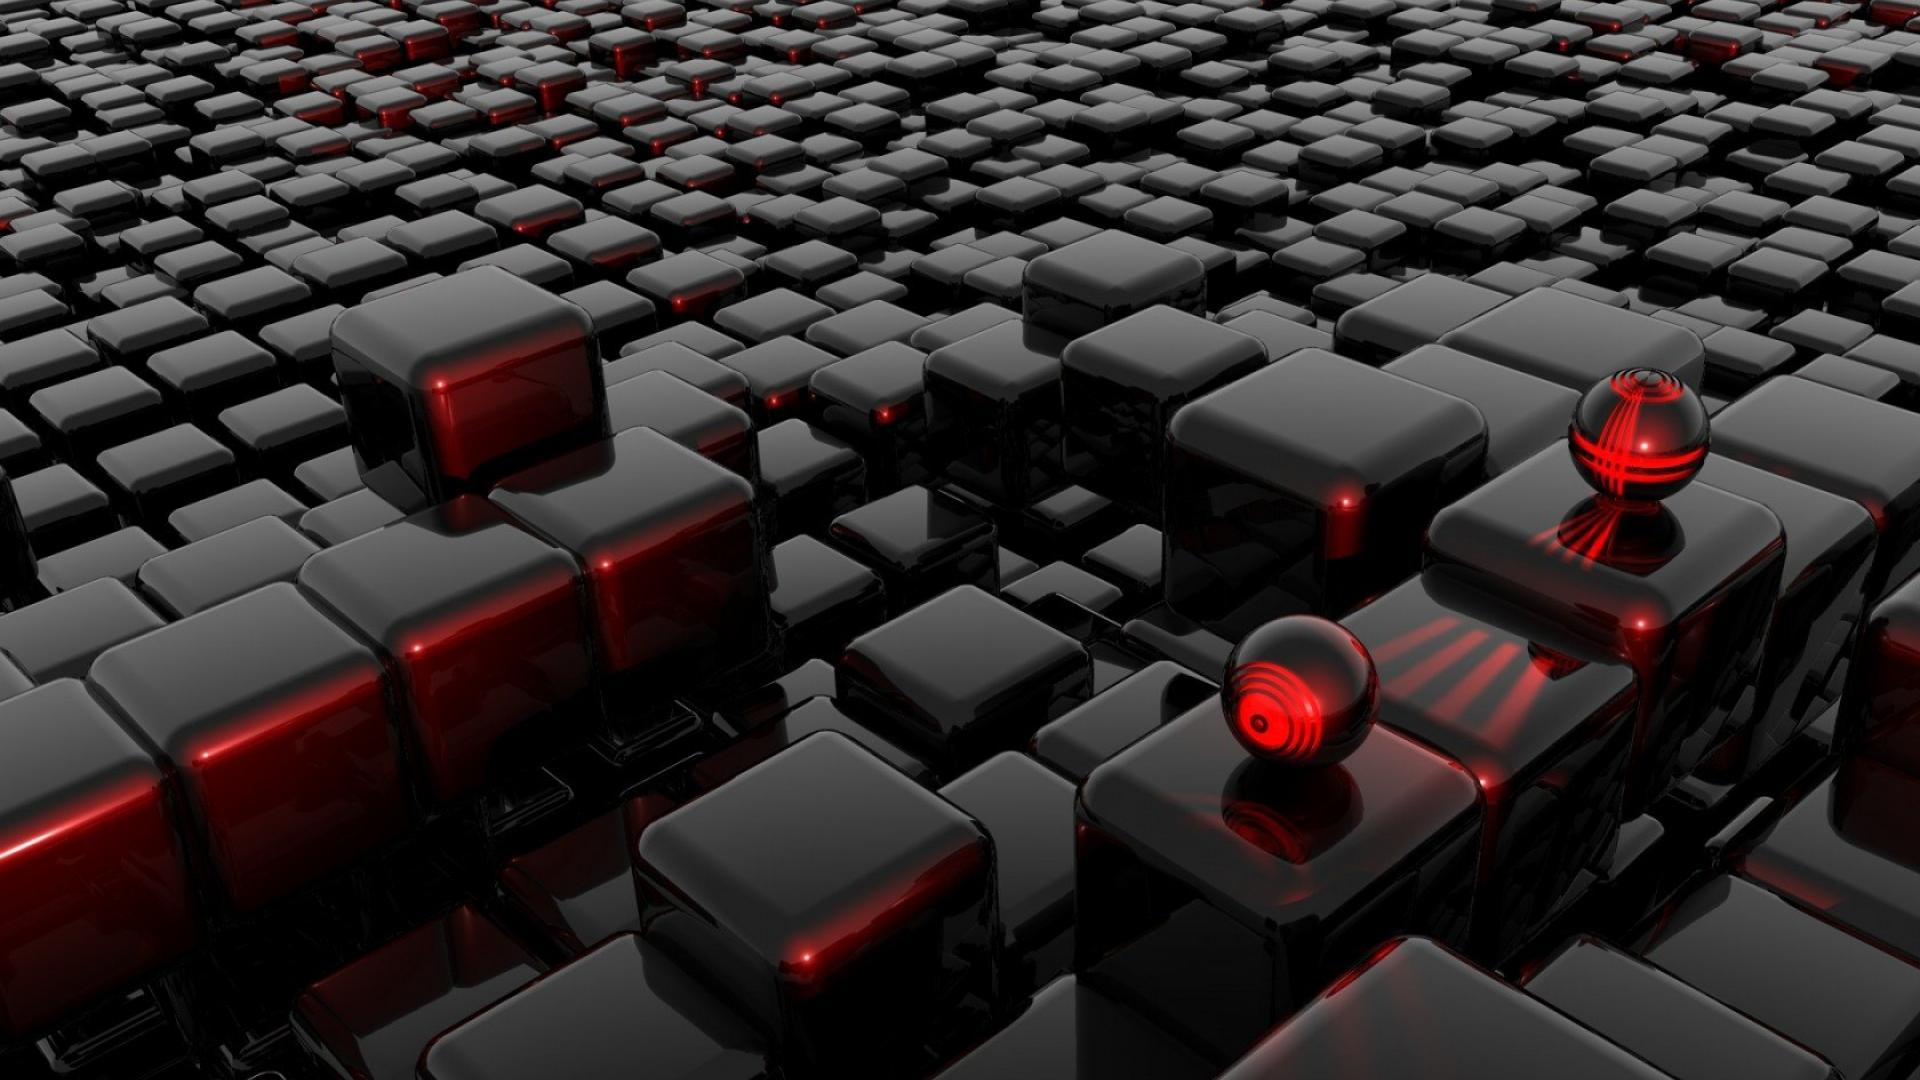 Black and Red Abstract High Resolution Wallpaper 419 1920x1080